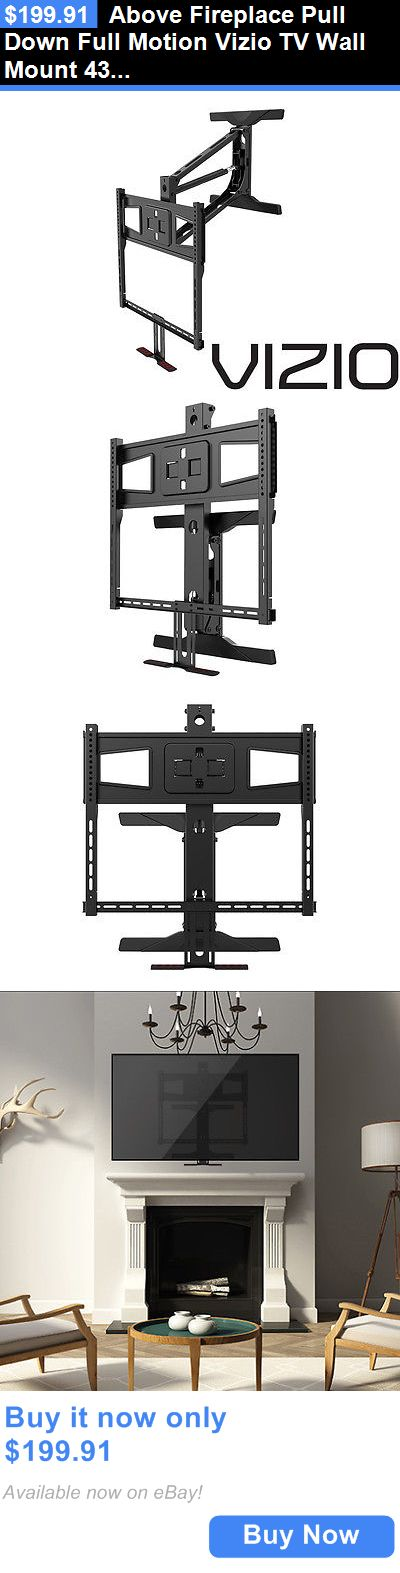 TV Mounts and Brackets: Above Fireplace Pull Down Full Motion Vizio Tv Wall  Mount 43